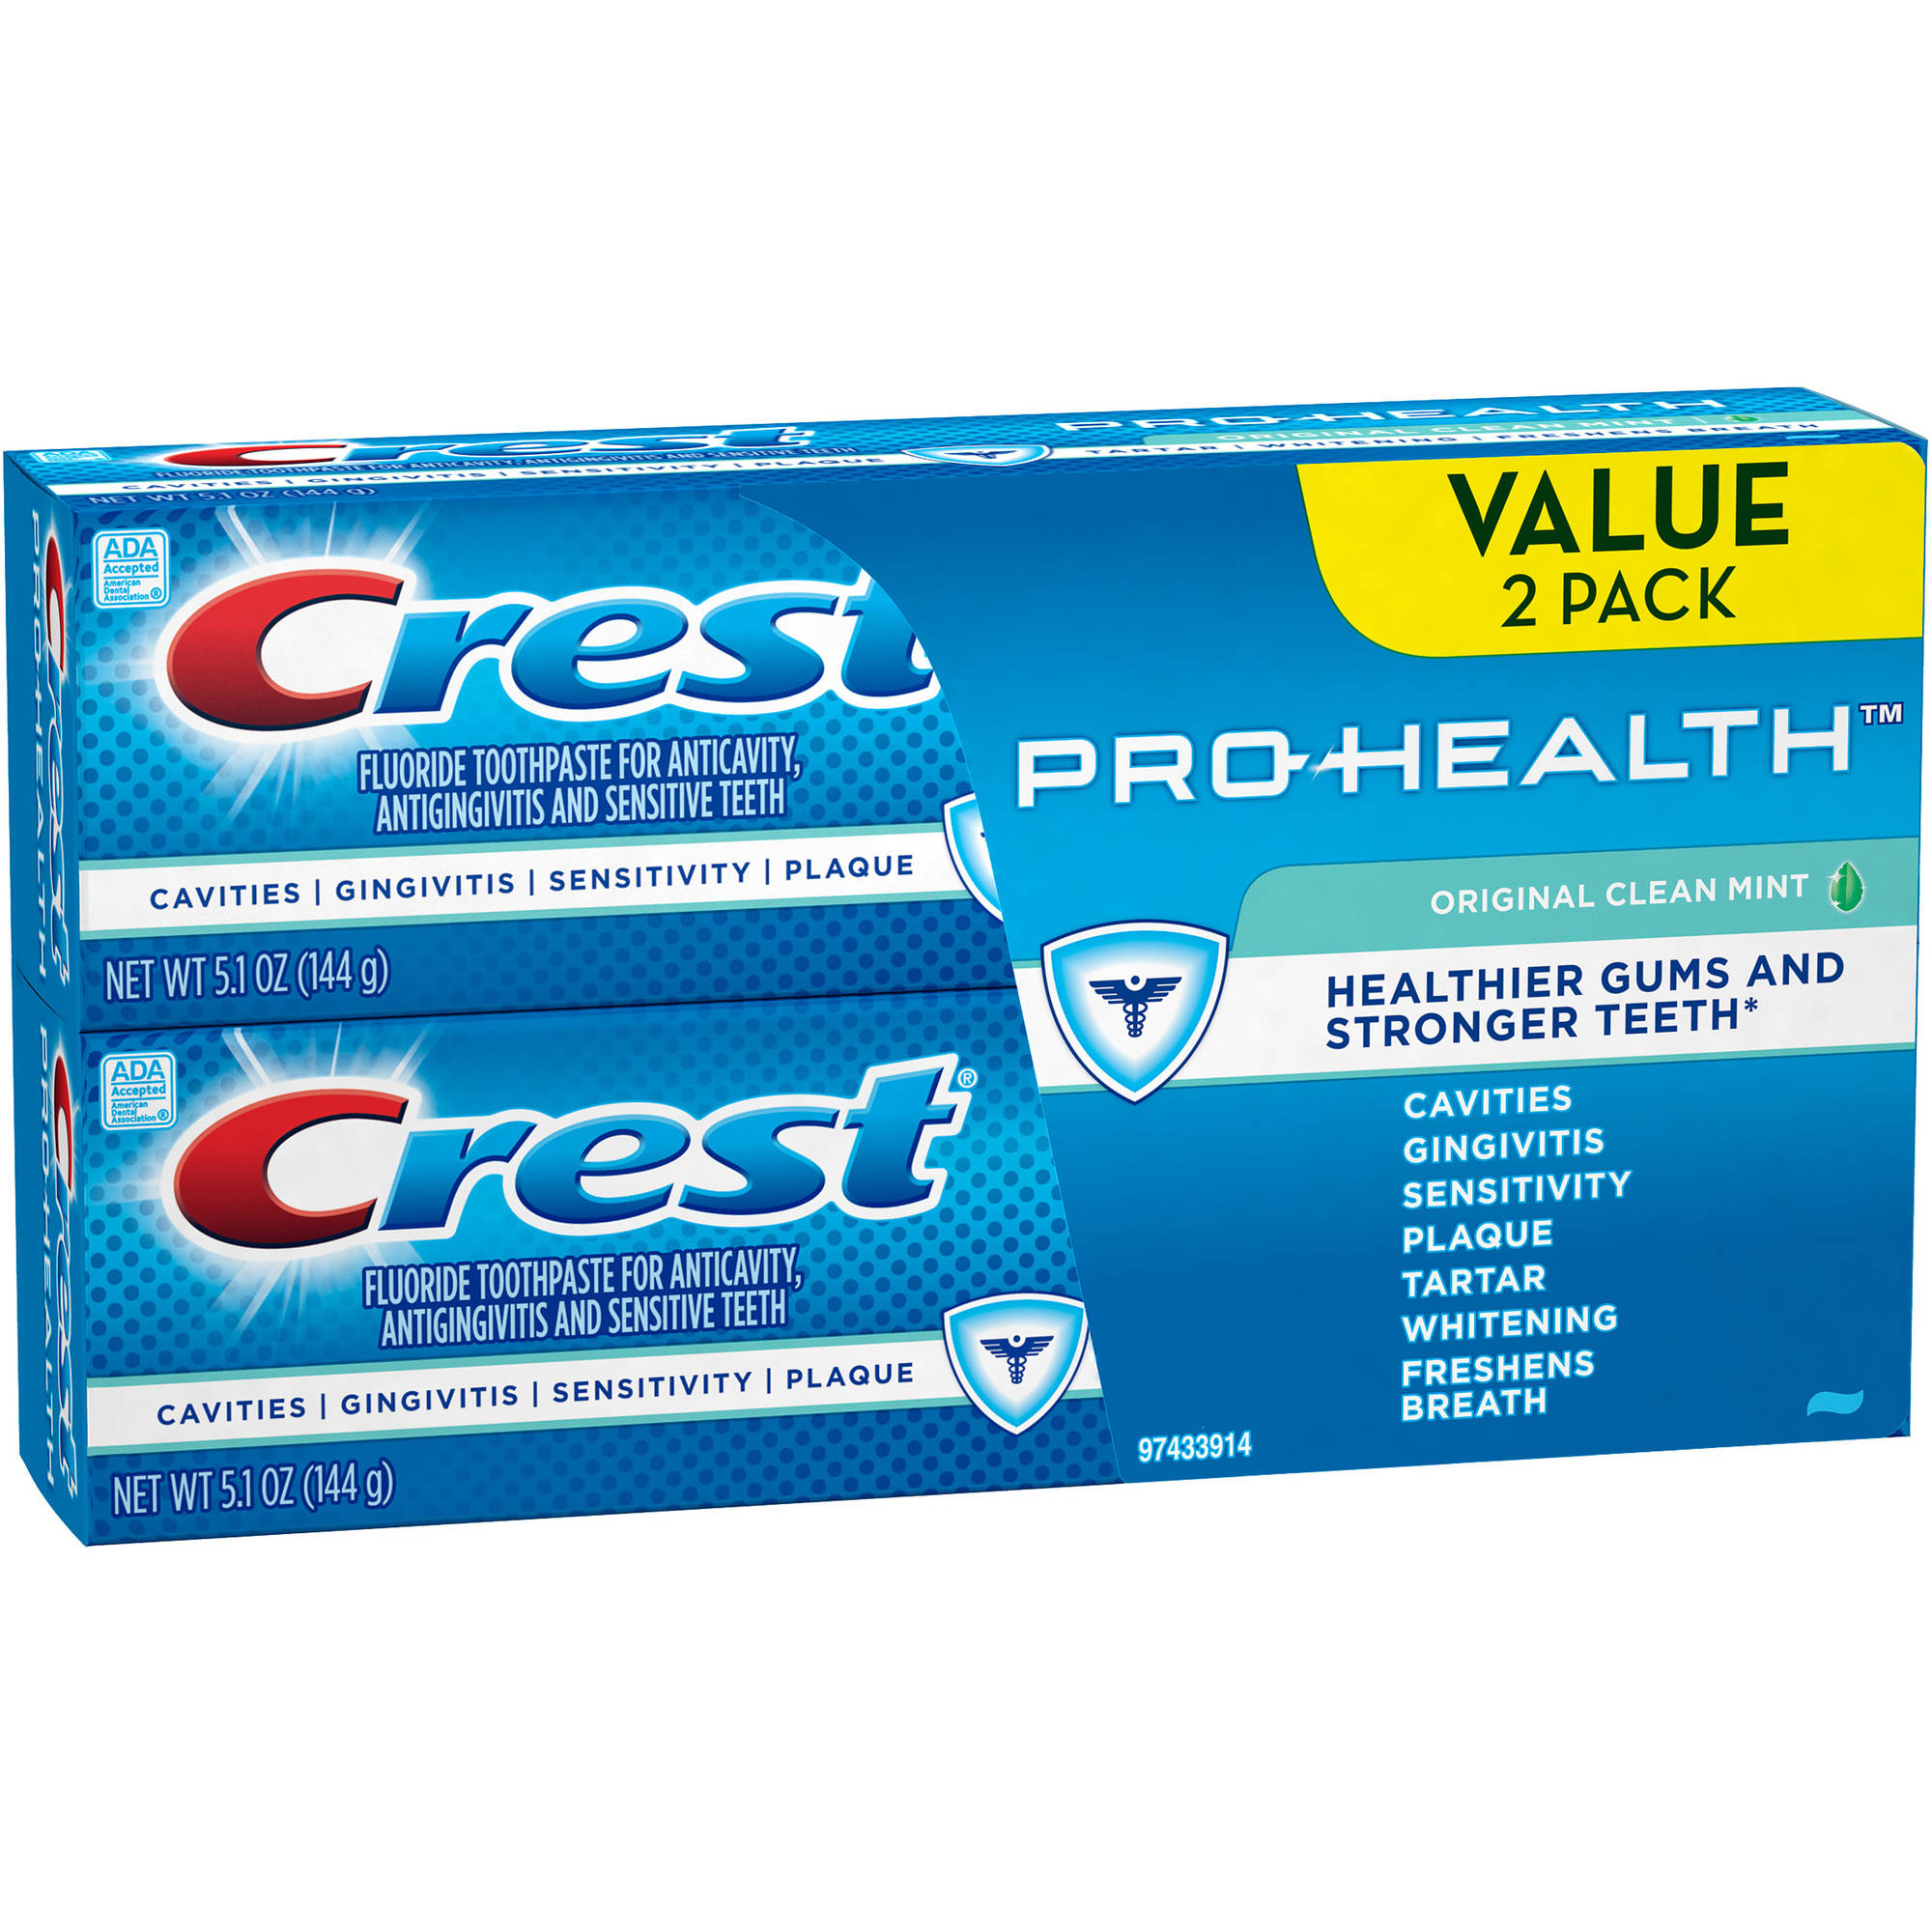 Crest Pro-Health Original Clean Mint Toothpaste, 5.1 oz, (Pack of 2)